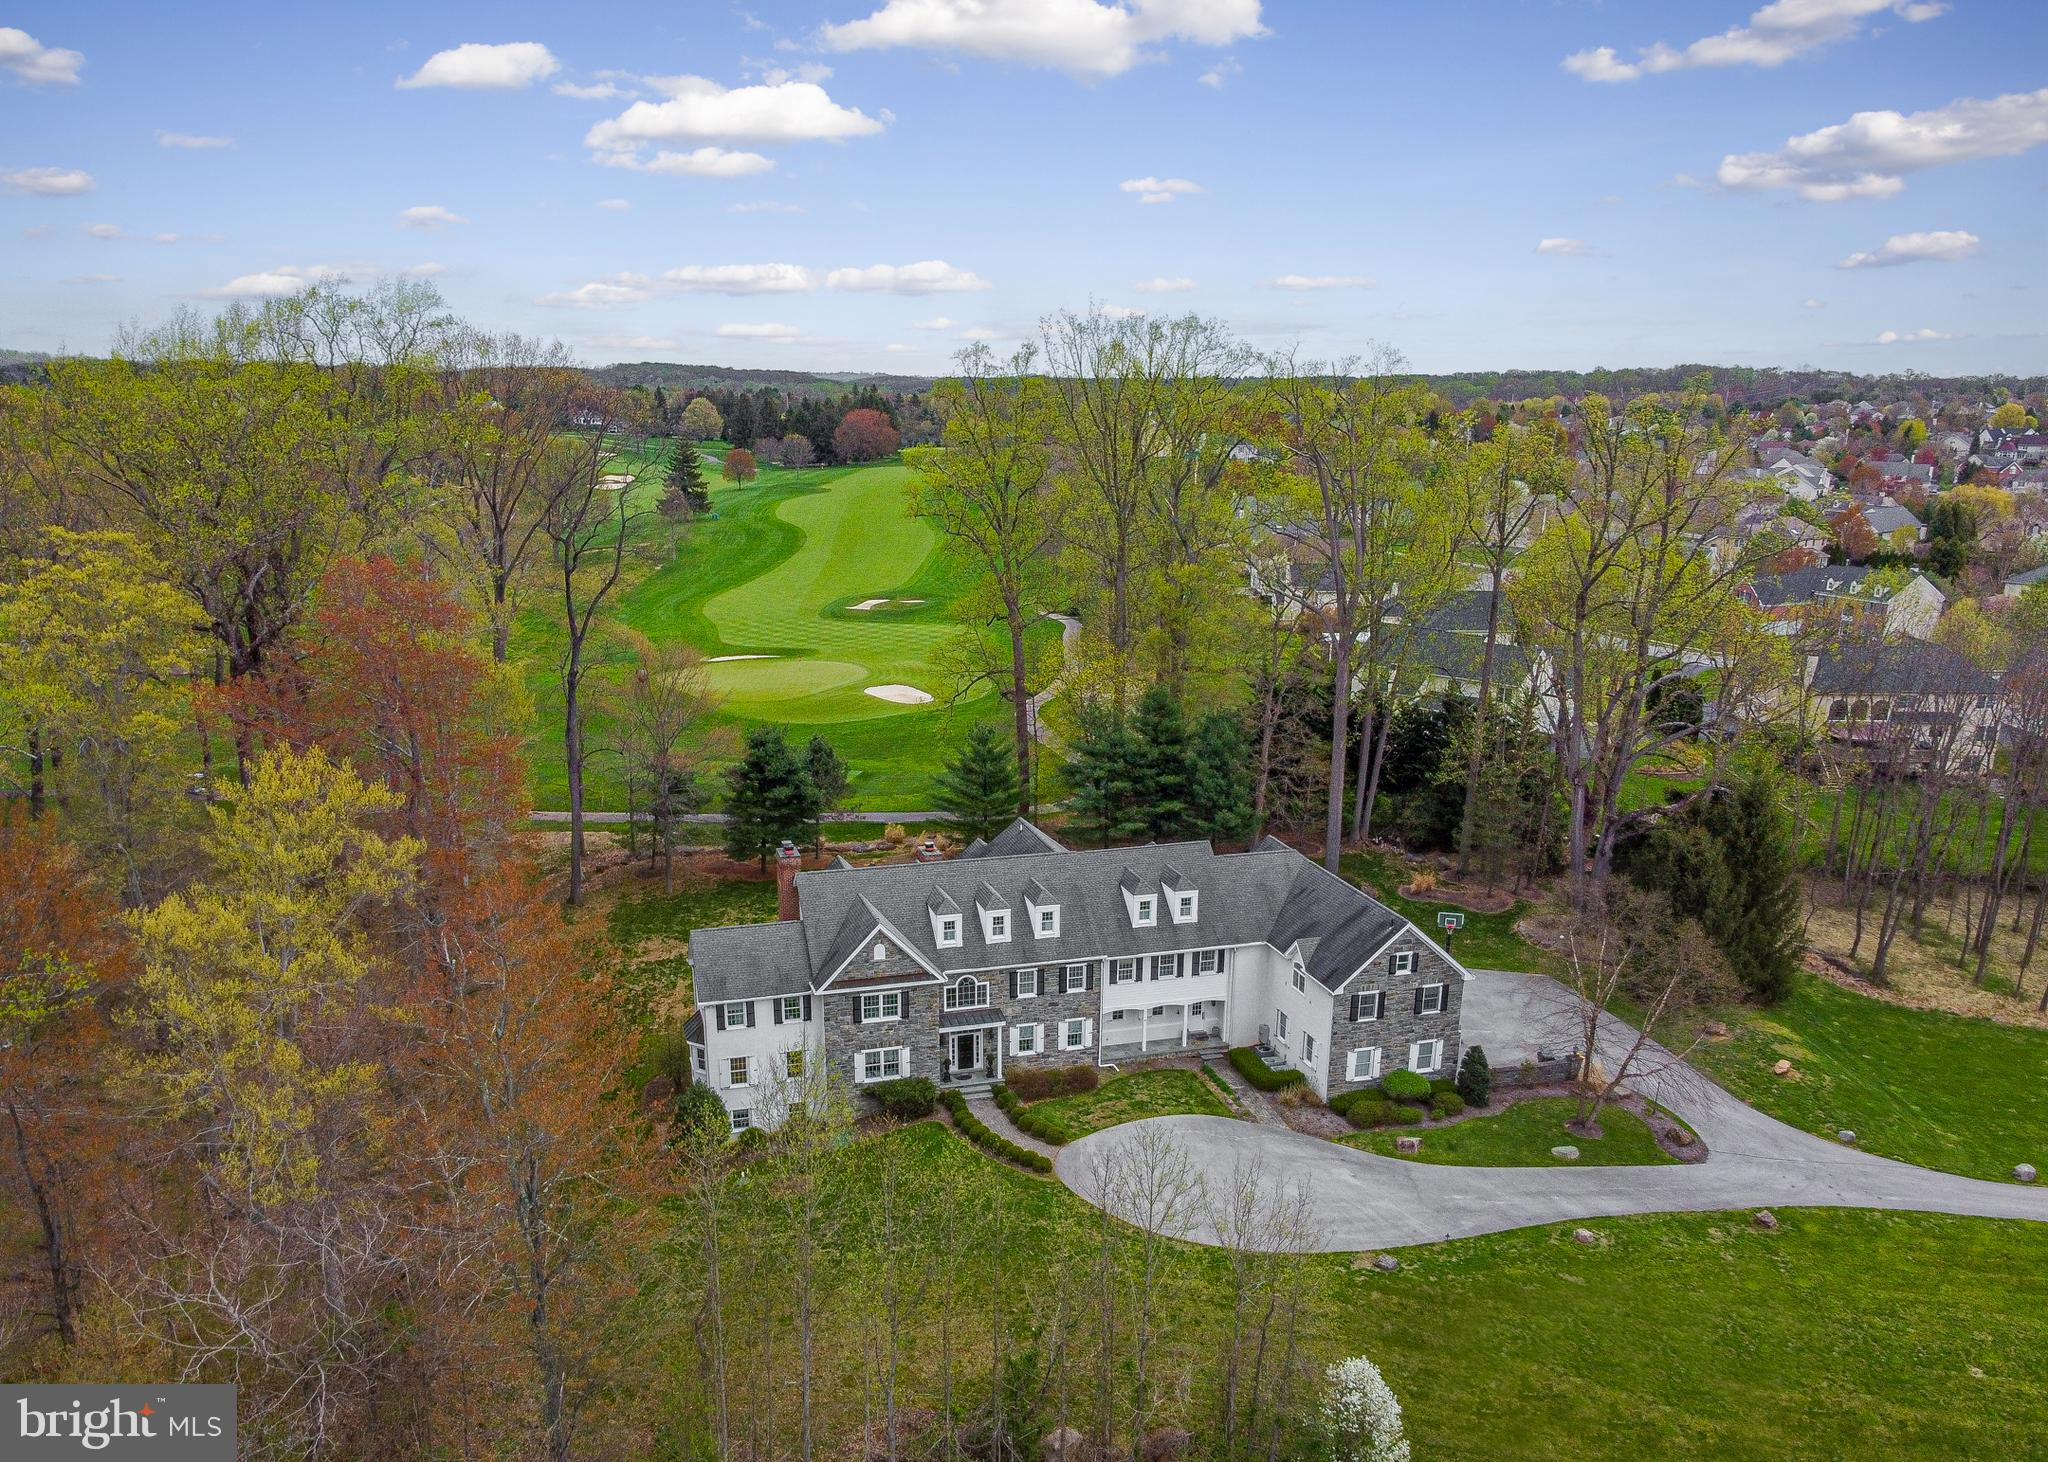 Overlooking Waynesborough Golf Course, this custom-designed and built home sits on 18 acres and maximizes the breathtaking views from every window. Located at the end of a private lane, 2291 S Valley Rd offers over 12,000 of living space on 4 levels. No expense was spared in building this home as evidenced by exquisite details throughout including curved archways, custom moldings, coffered ceilings, tray ceilings, stone feature walls, custom built-in cabinetry, oversized windows, and site-finished hardwood floors. Enter through a grand 2-story foyer that extends from front to back showcasing the stunning view from the moment you walk through the door.  The living room, with a herringbone pattern floor, fireplace and window seat connects to a private study with built-in cabinetry. Opposite the living room is the dining room, with classic wainscotting, and access to an amazing butler's pantry and bar area which connects to the gourmet kitchen.  The breakfast room with sliders to the patio opens to the 2 story family room all with golf course views and natural light.  A mudroom with cubbies and two powder rooms complete this level. Upstairs, the second level includes the generous master suite with fireplace, tray ceiling, large walk-in closets and spa-like owner's bathroom. Four additional bedrooms, 3 full bathrooms are also located on the second floor.  Not to be missed is the oversized bonus room with a volume ceiling which can make a perfect playroom, game room or with the 3 built-in desks, a virtual learning space. An au-pair/in-law suite with a full kitchen, bedroom and bath are found off the bonus room and rear stair.  The finished third level offers so many possibilities - a recreation room. private suite or whatever you might need!  The finished walkout basement rivals any finished basement on the market. A full pub-style bar, wine cellar, exercise room, sauna, full bath, billiards room, family room with fireplace and sunroom, this space has something for every